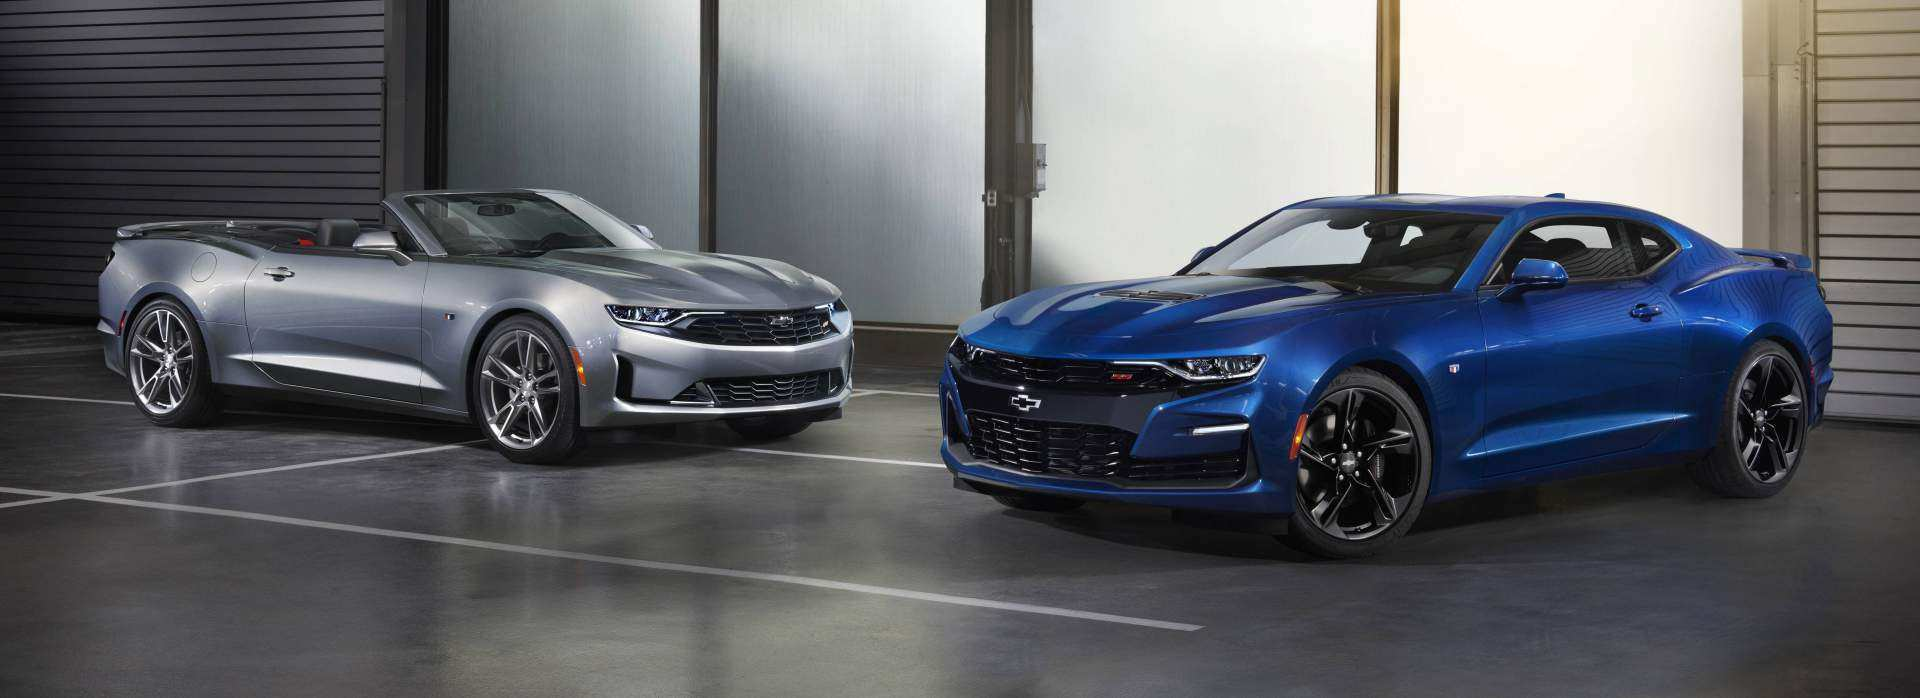 73 The Best Chevrolet Camaro 2020 Pictures Images